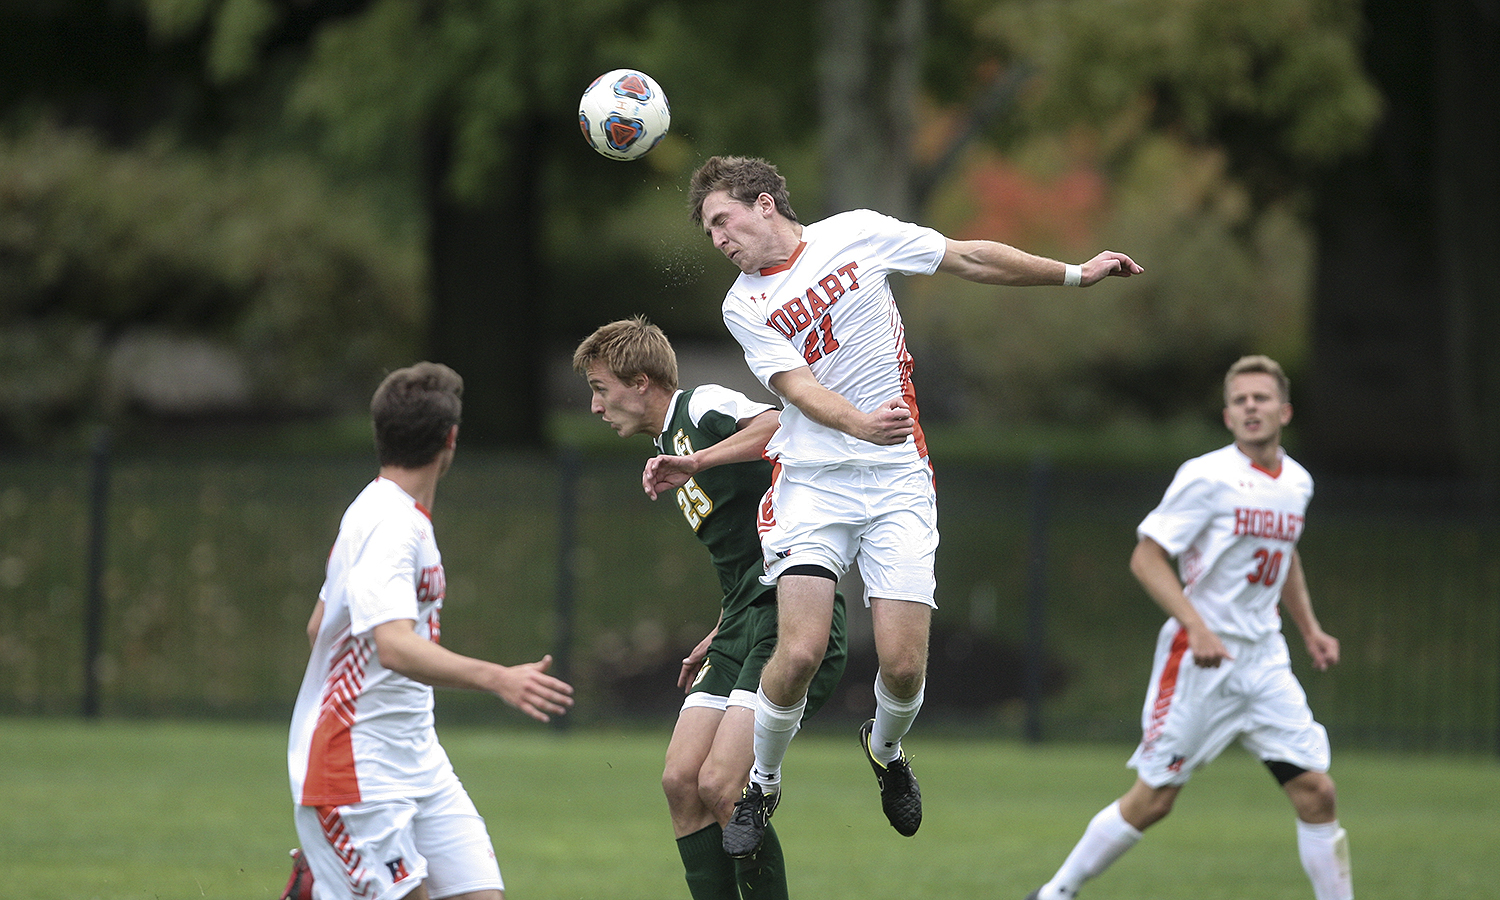 Hunter Critchlow '18 gets a head on the ball during Saturdays match-up with Clarkson on Cozzens Field. The Statesmen won the game 2-1 in overtime.